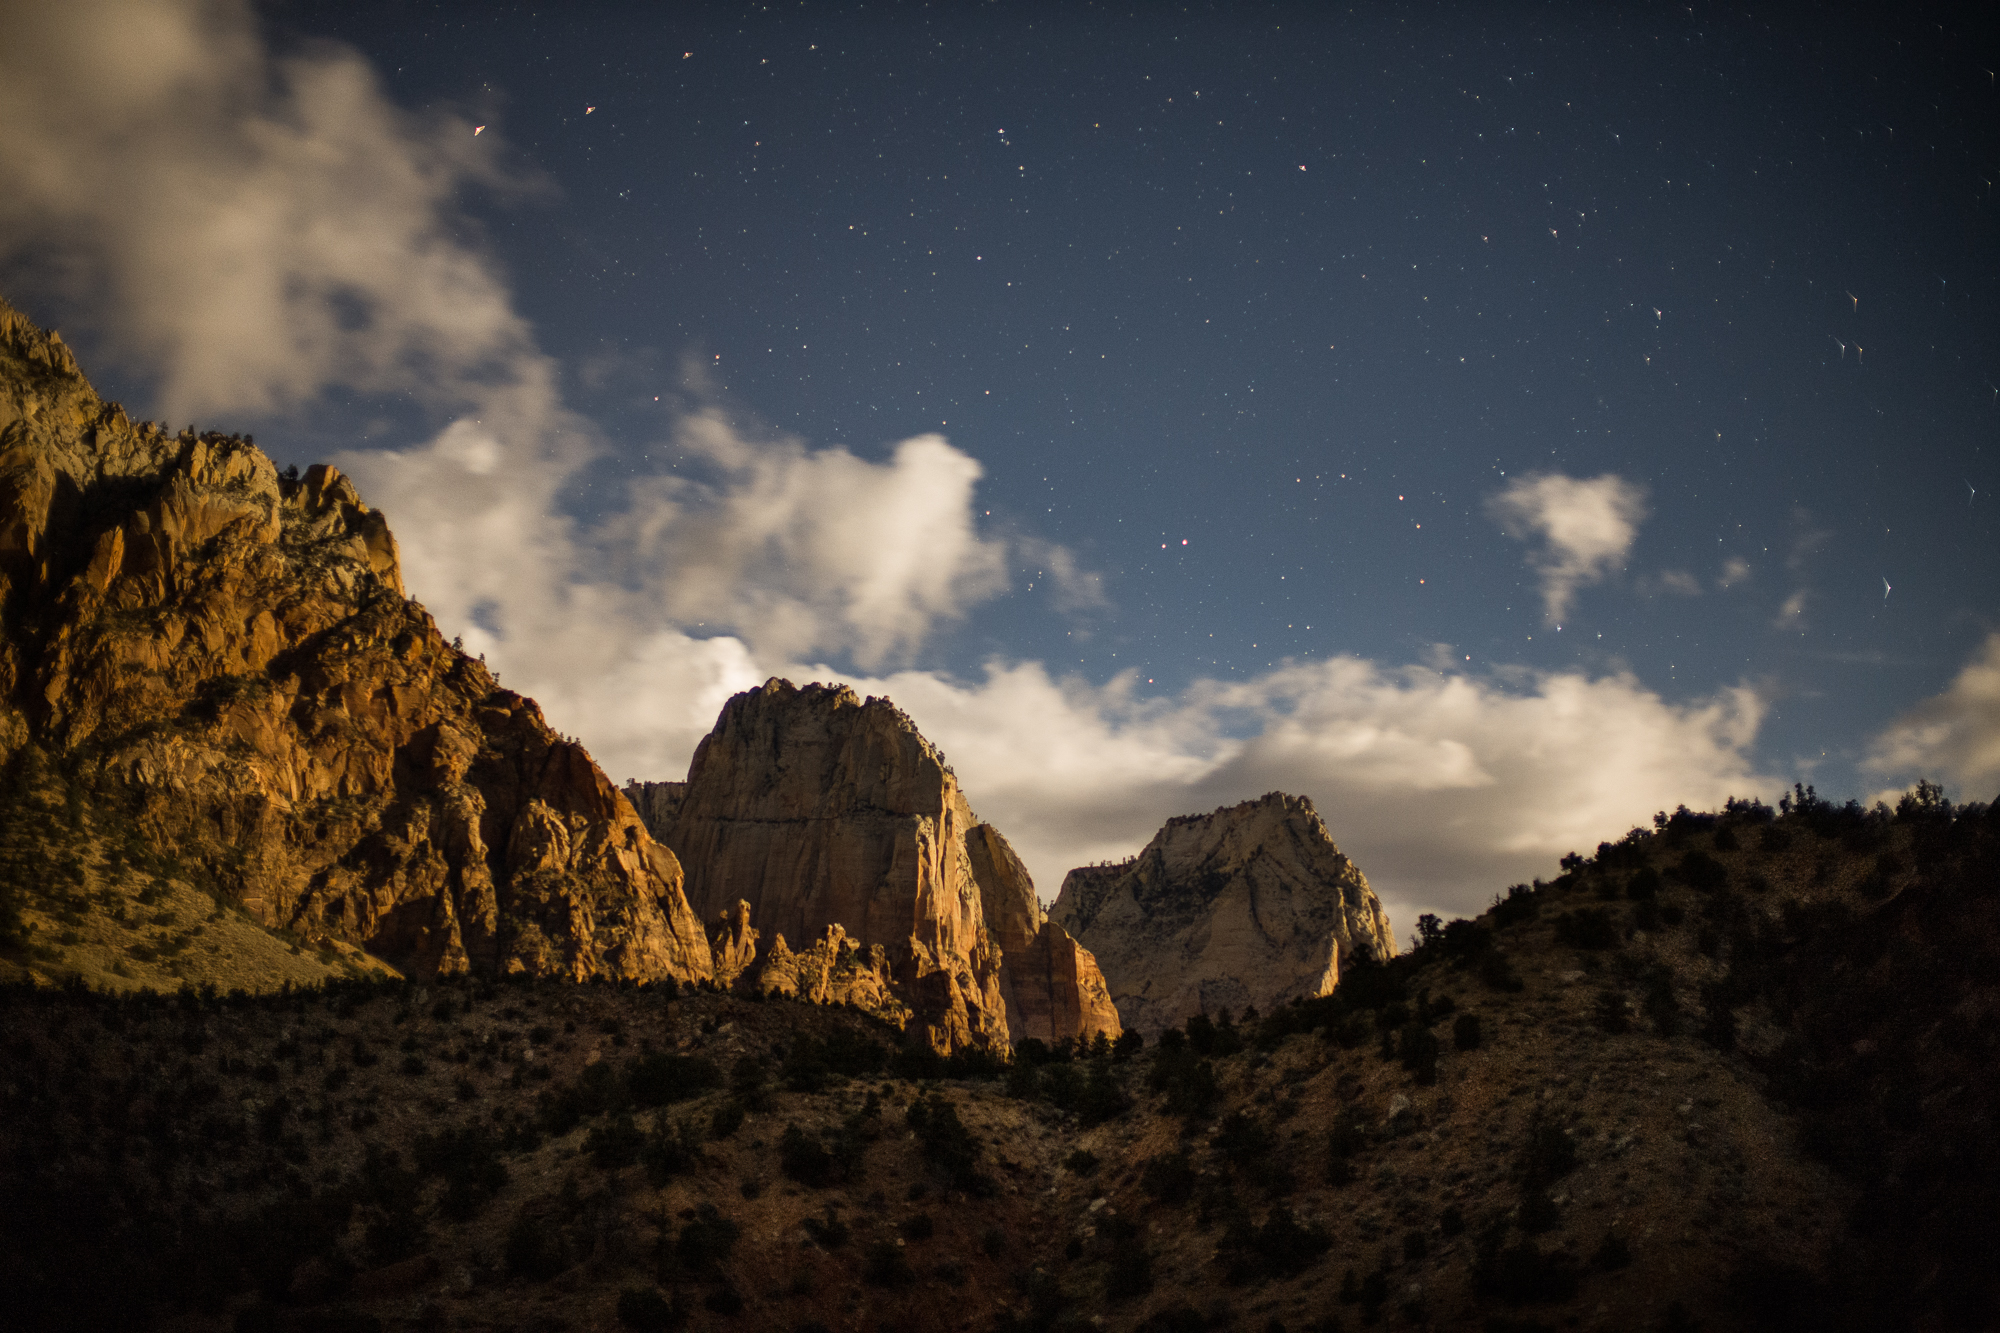 Zion Canyon lit by moonlight and stars